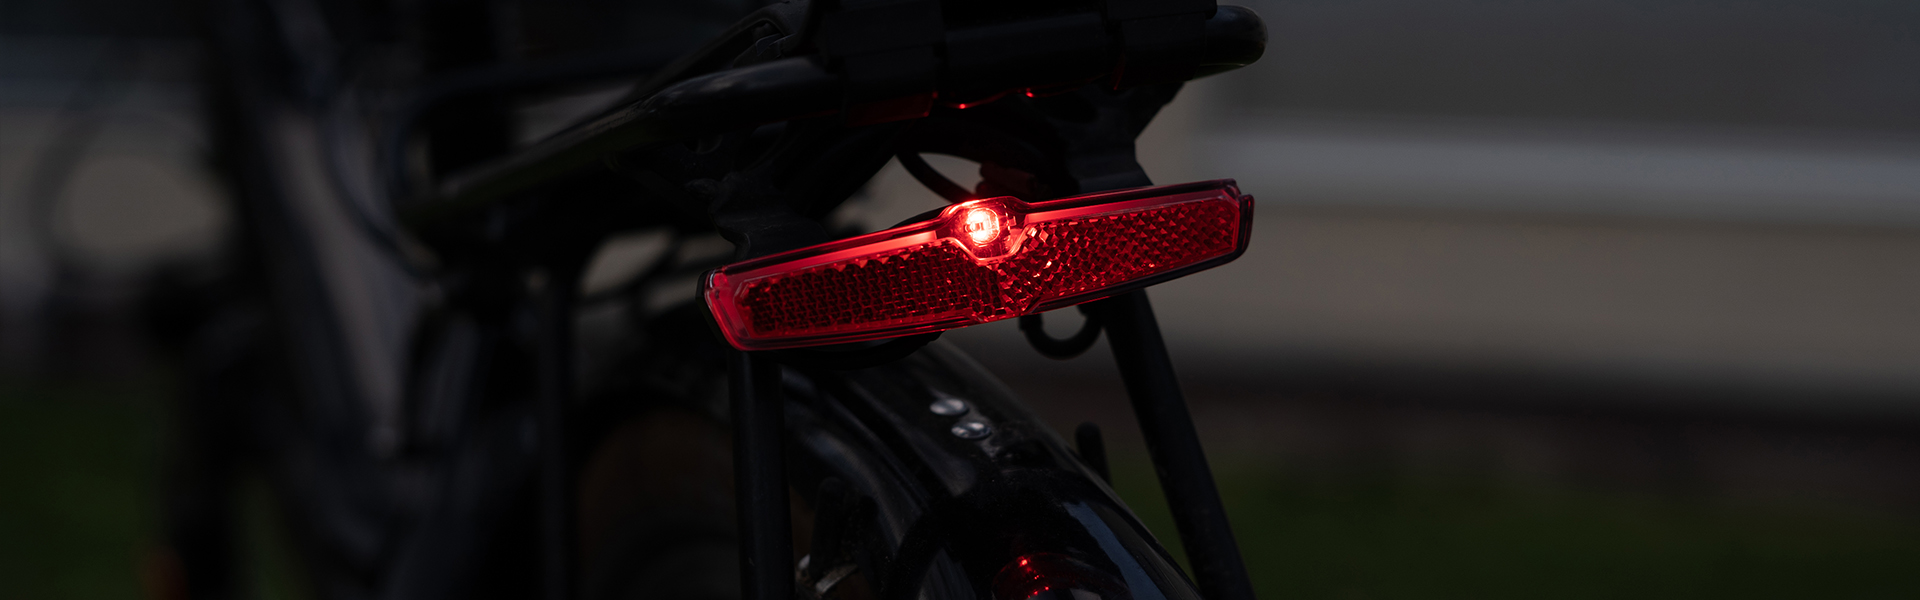 M9 Escooter/ ebike/ hub dynamo rear light/ bicycle rear light/bicycle taillight with StVZO